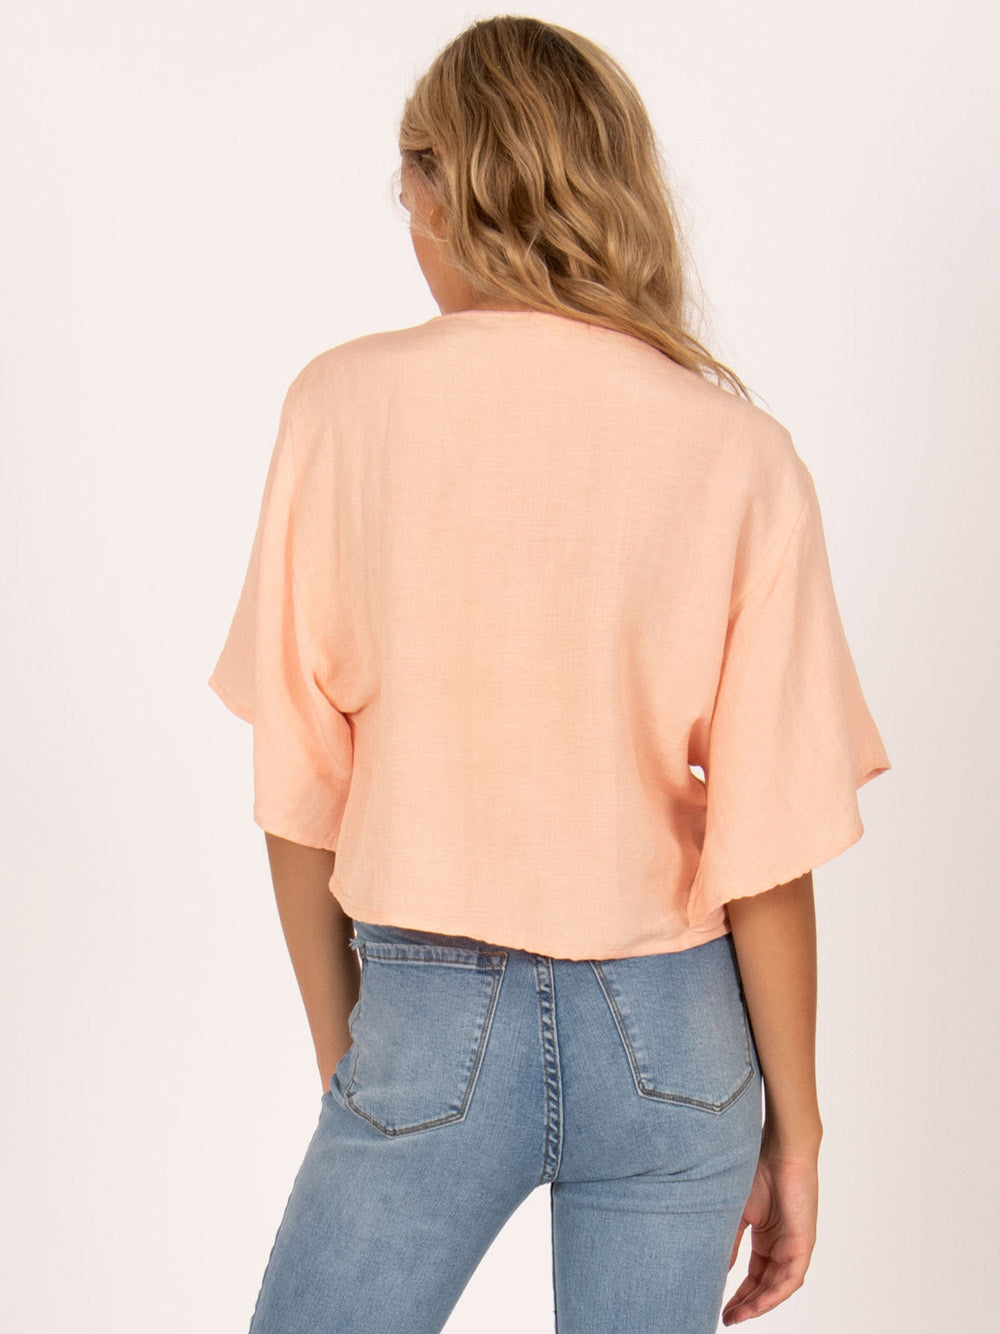 AMUSE SOCIETY Bungalow Short Sleeve Woven Crop Top - Peach